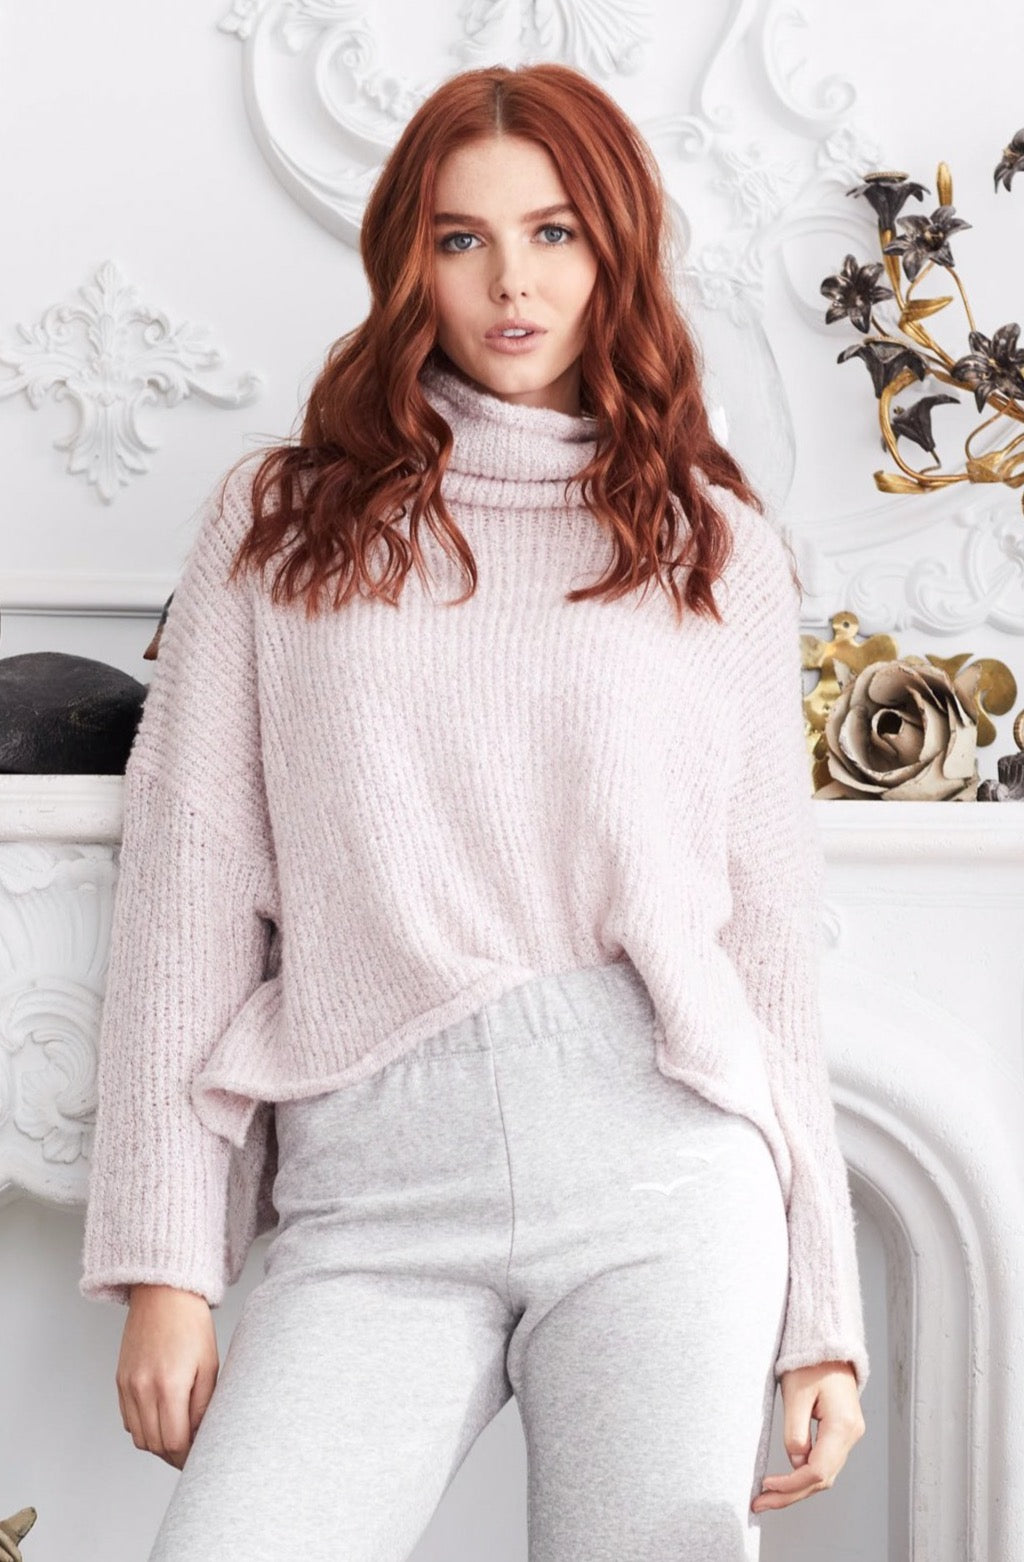 Julia Marled Knit Cowl Neck Sweater - honey